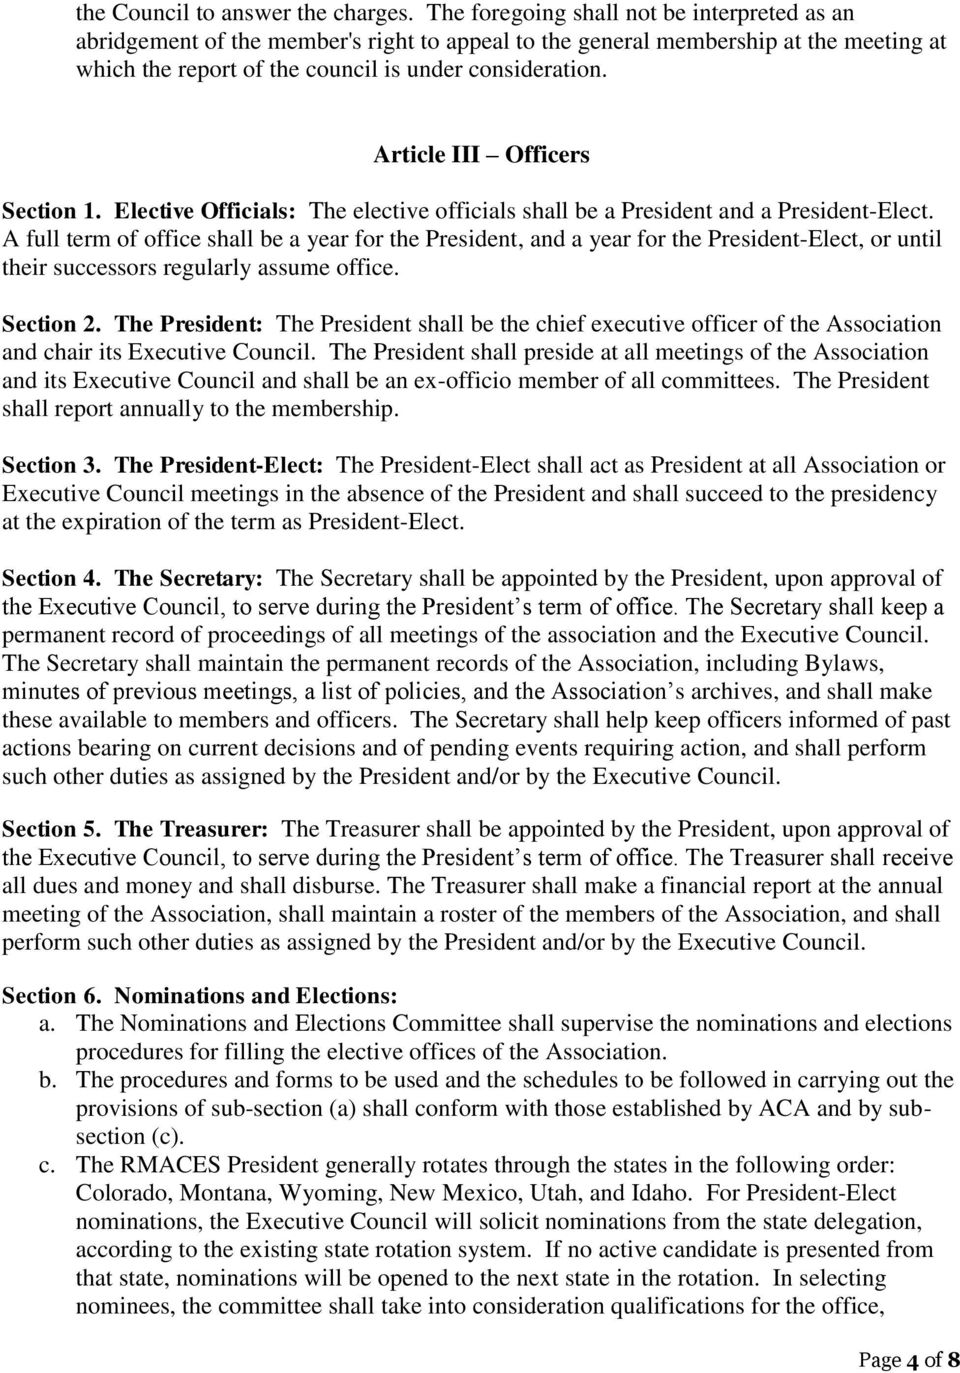 Article III Officers Section 1. Elective Officials: The elective officials shall be a President and a President-Elect.